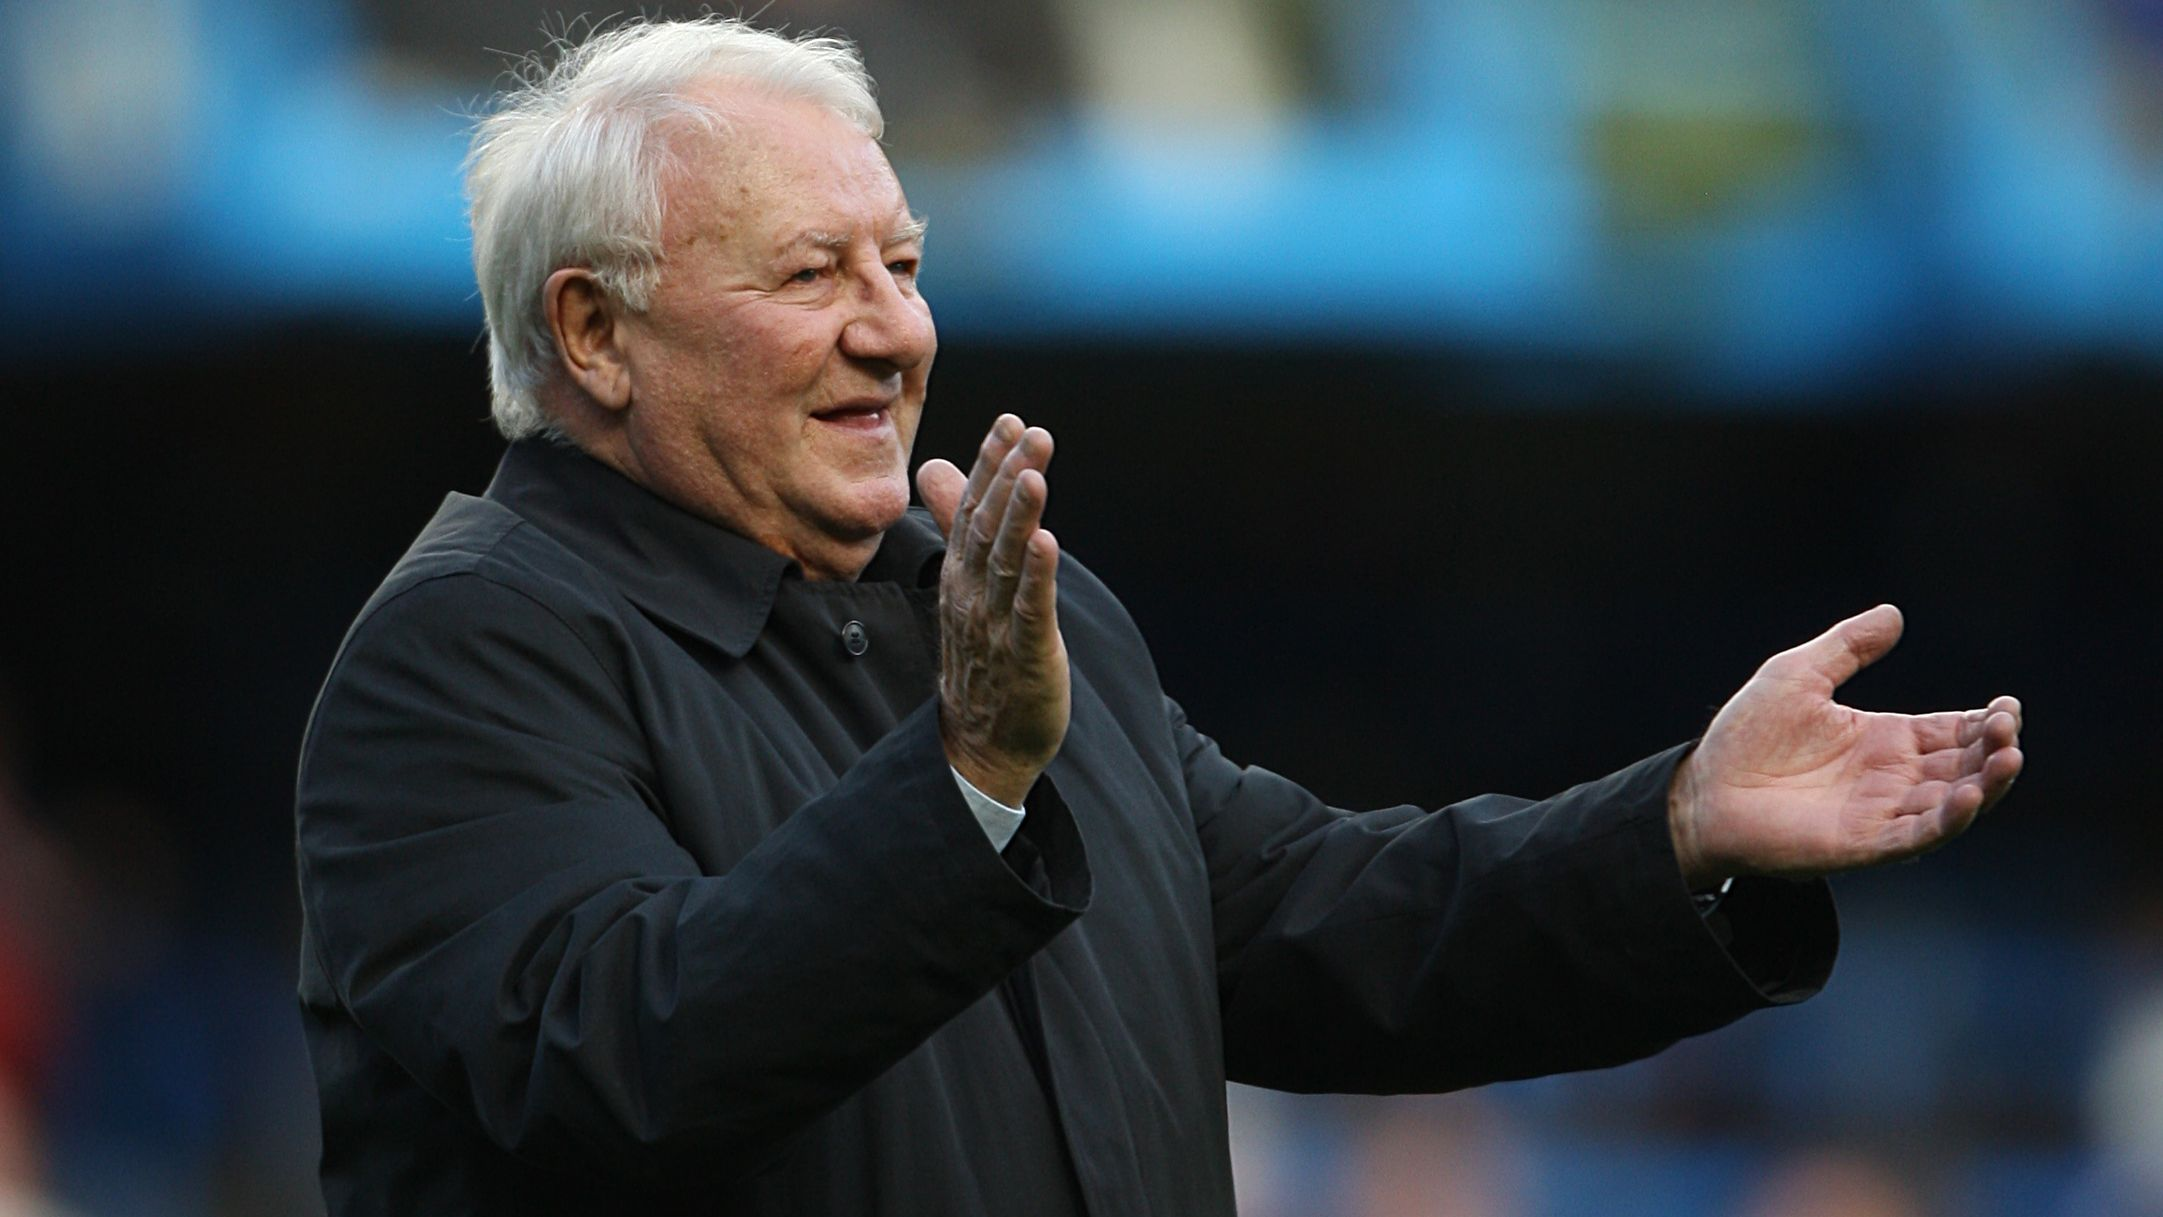 Former Manchester United, Chelsea and Scotland manager Tommy Docherty dies aged 92